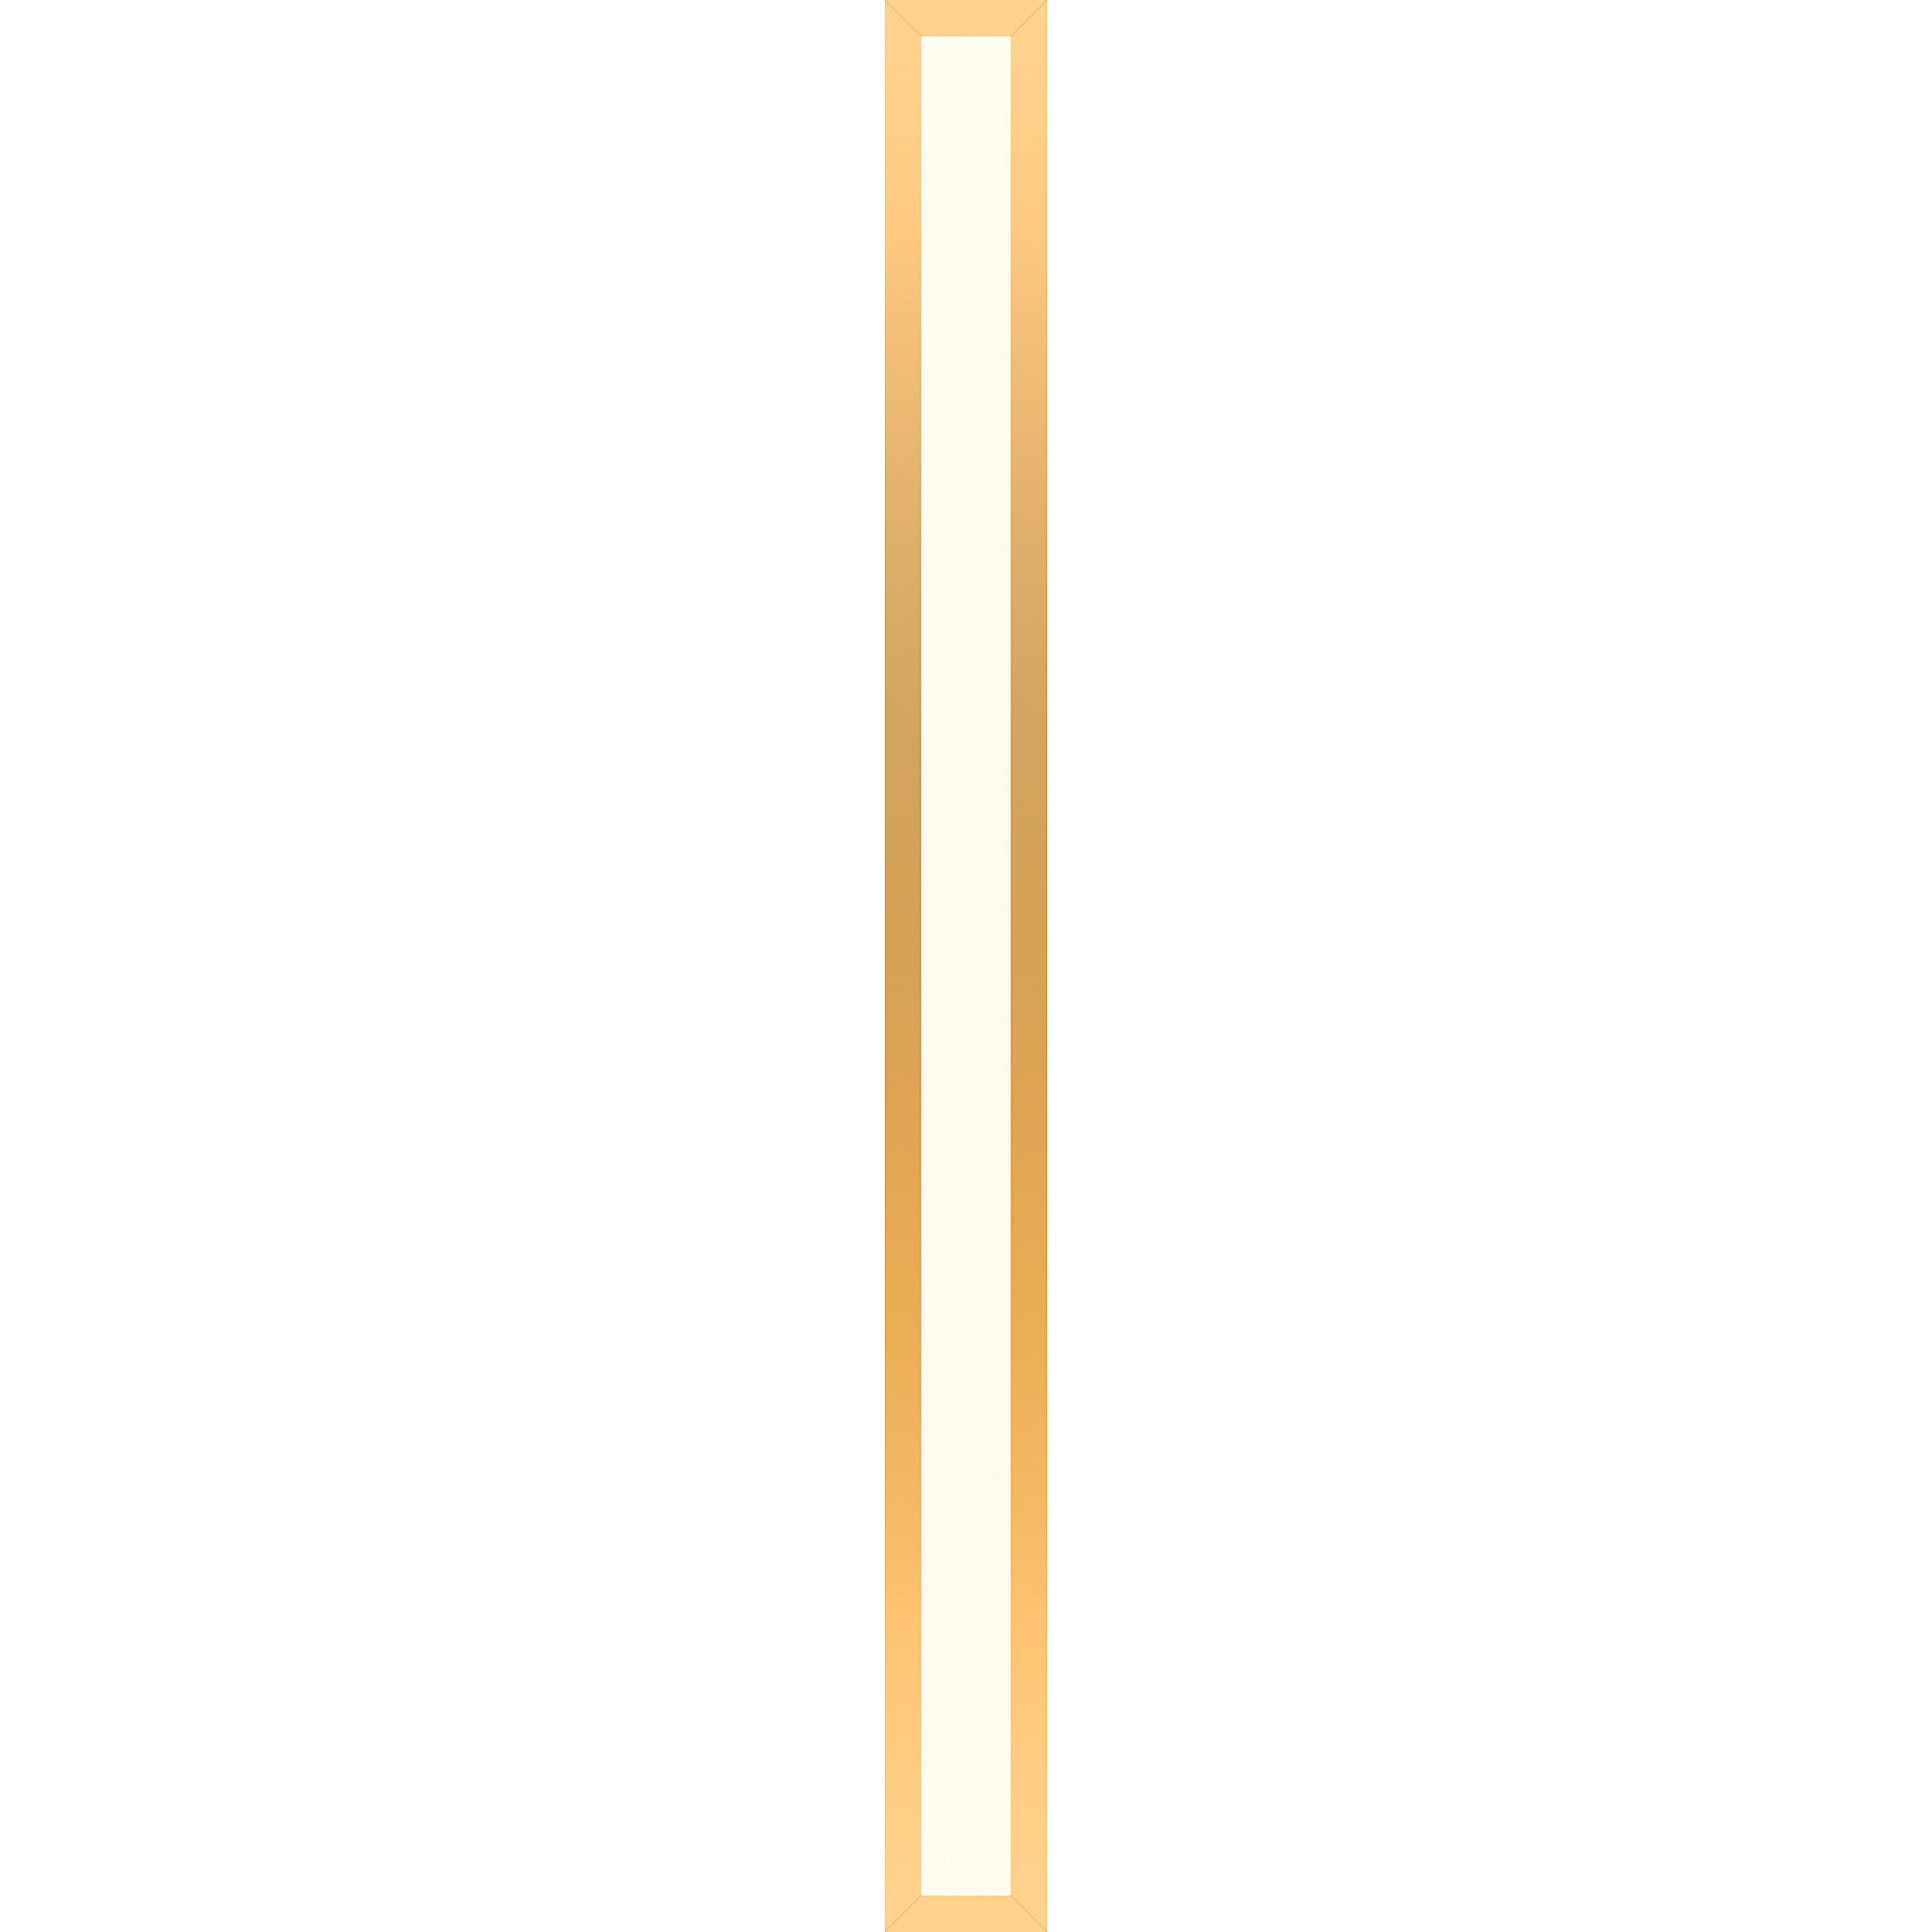 "Robern PL3.540TLSC82DV Profiles Framed Lighting, 3-1/2"" x 40"" x 4-5/8"", Matte Gold, Variable 2700K to 5600K Temperature (Warm to"